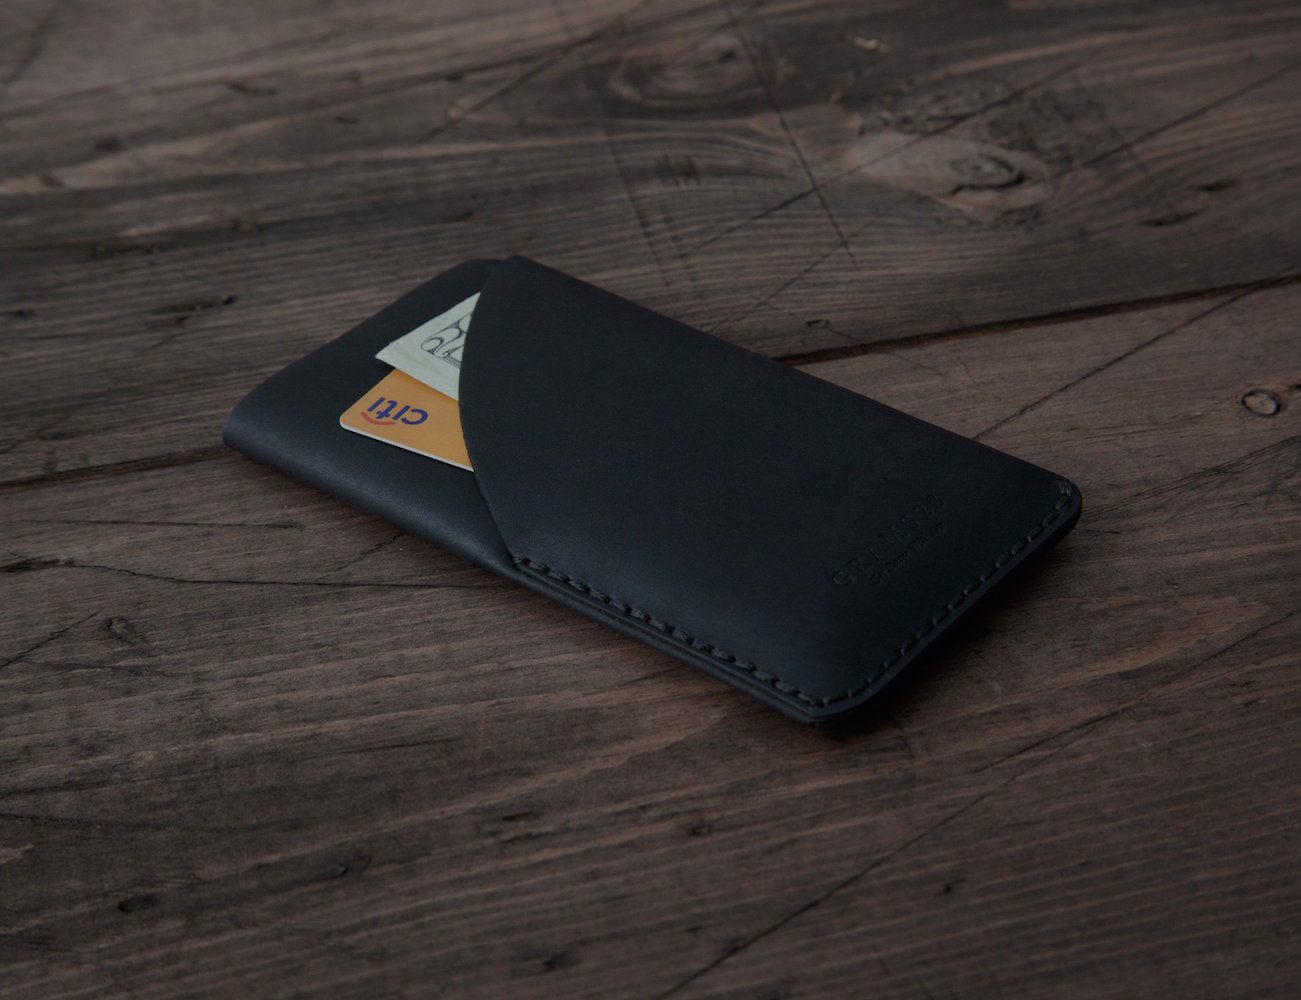 One card slot to hold up to 3 cards and a working iPhone 6 cover makes this Matte Black iPhone 6 Card Sleeve a compact accessory you can carry in your pockets every day.